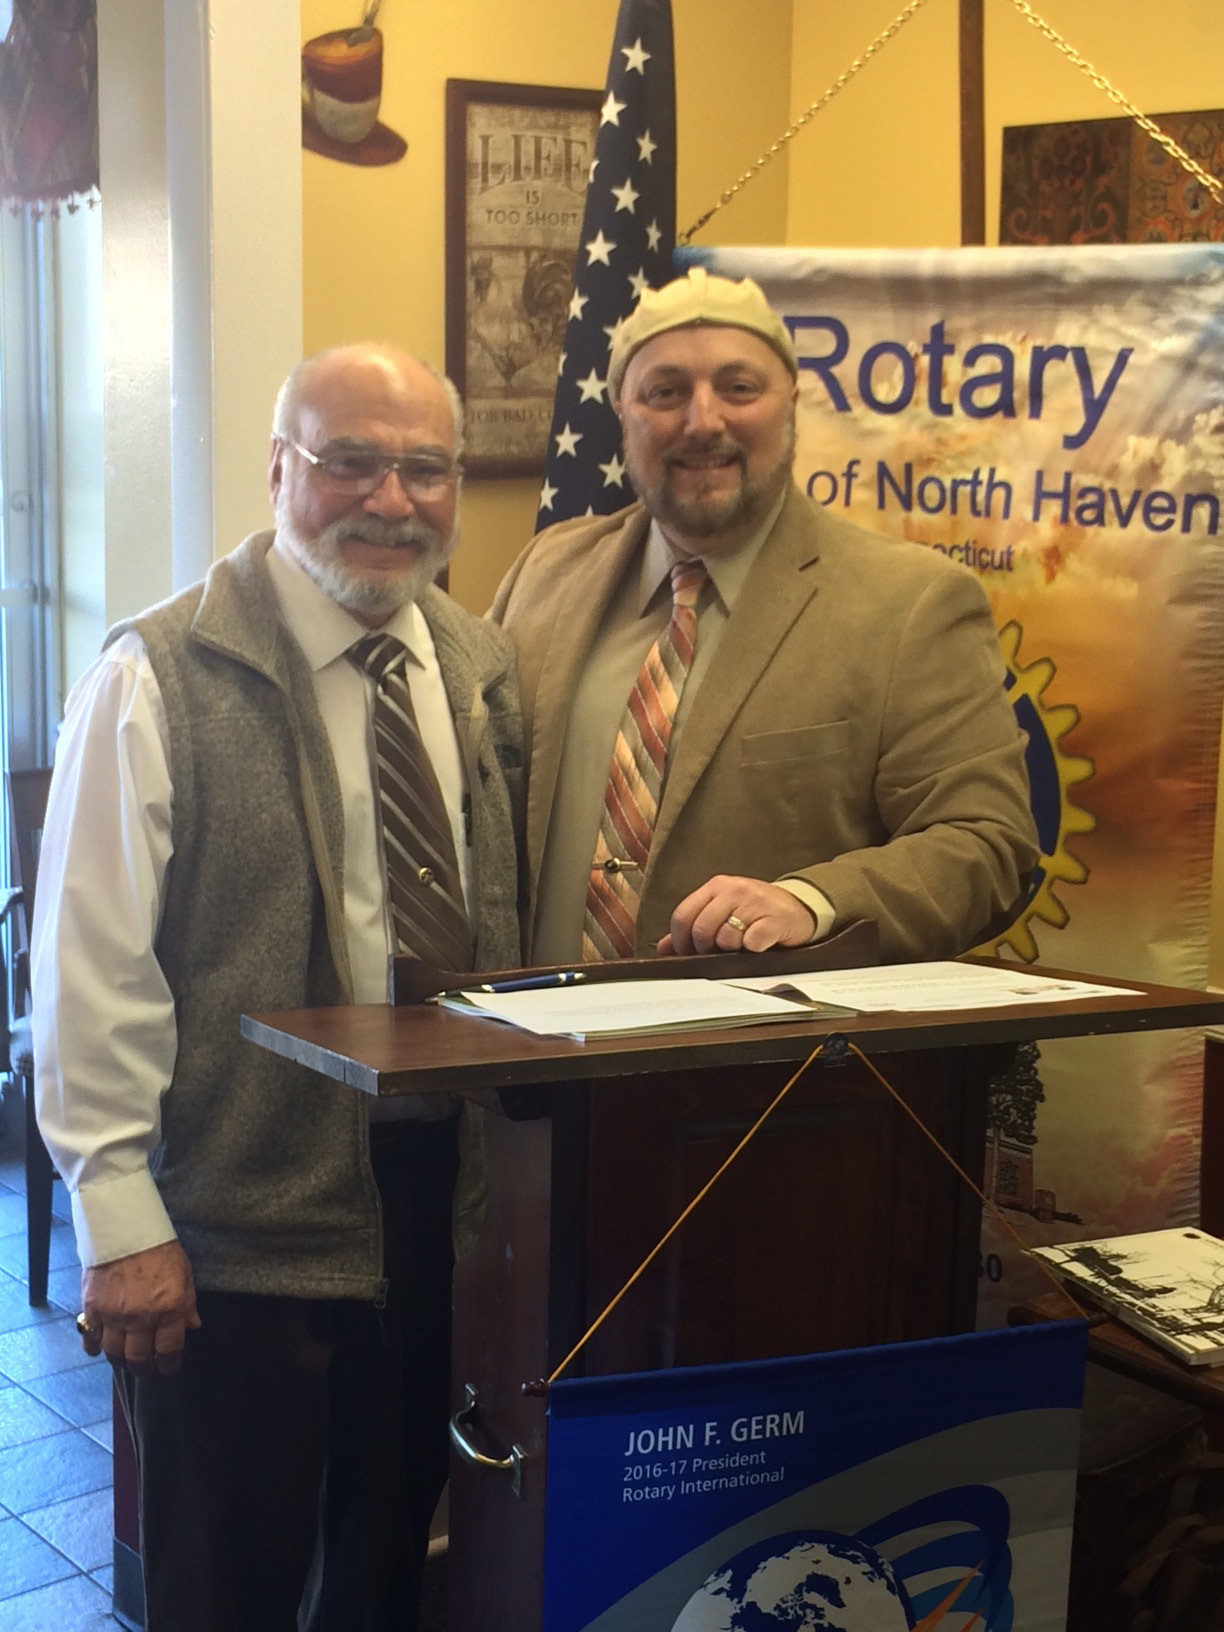 The roots of our towns can be traced back to ecclesiastical entities, according to Nick Iannone of the North Haven Historical Society during his recent speech before the North Haven Rotary Club. For instance, the North Haven Town Green dates back to 1714 and Reverend James Pierpont, who willed 8-to-10 acres of his land to neighbors provided that they set their meeting house and make their training and burial places there. Iannone, left, is pictured with North Haven Rotary Club President Mark Minotti.